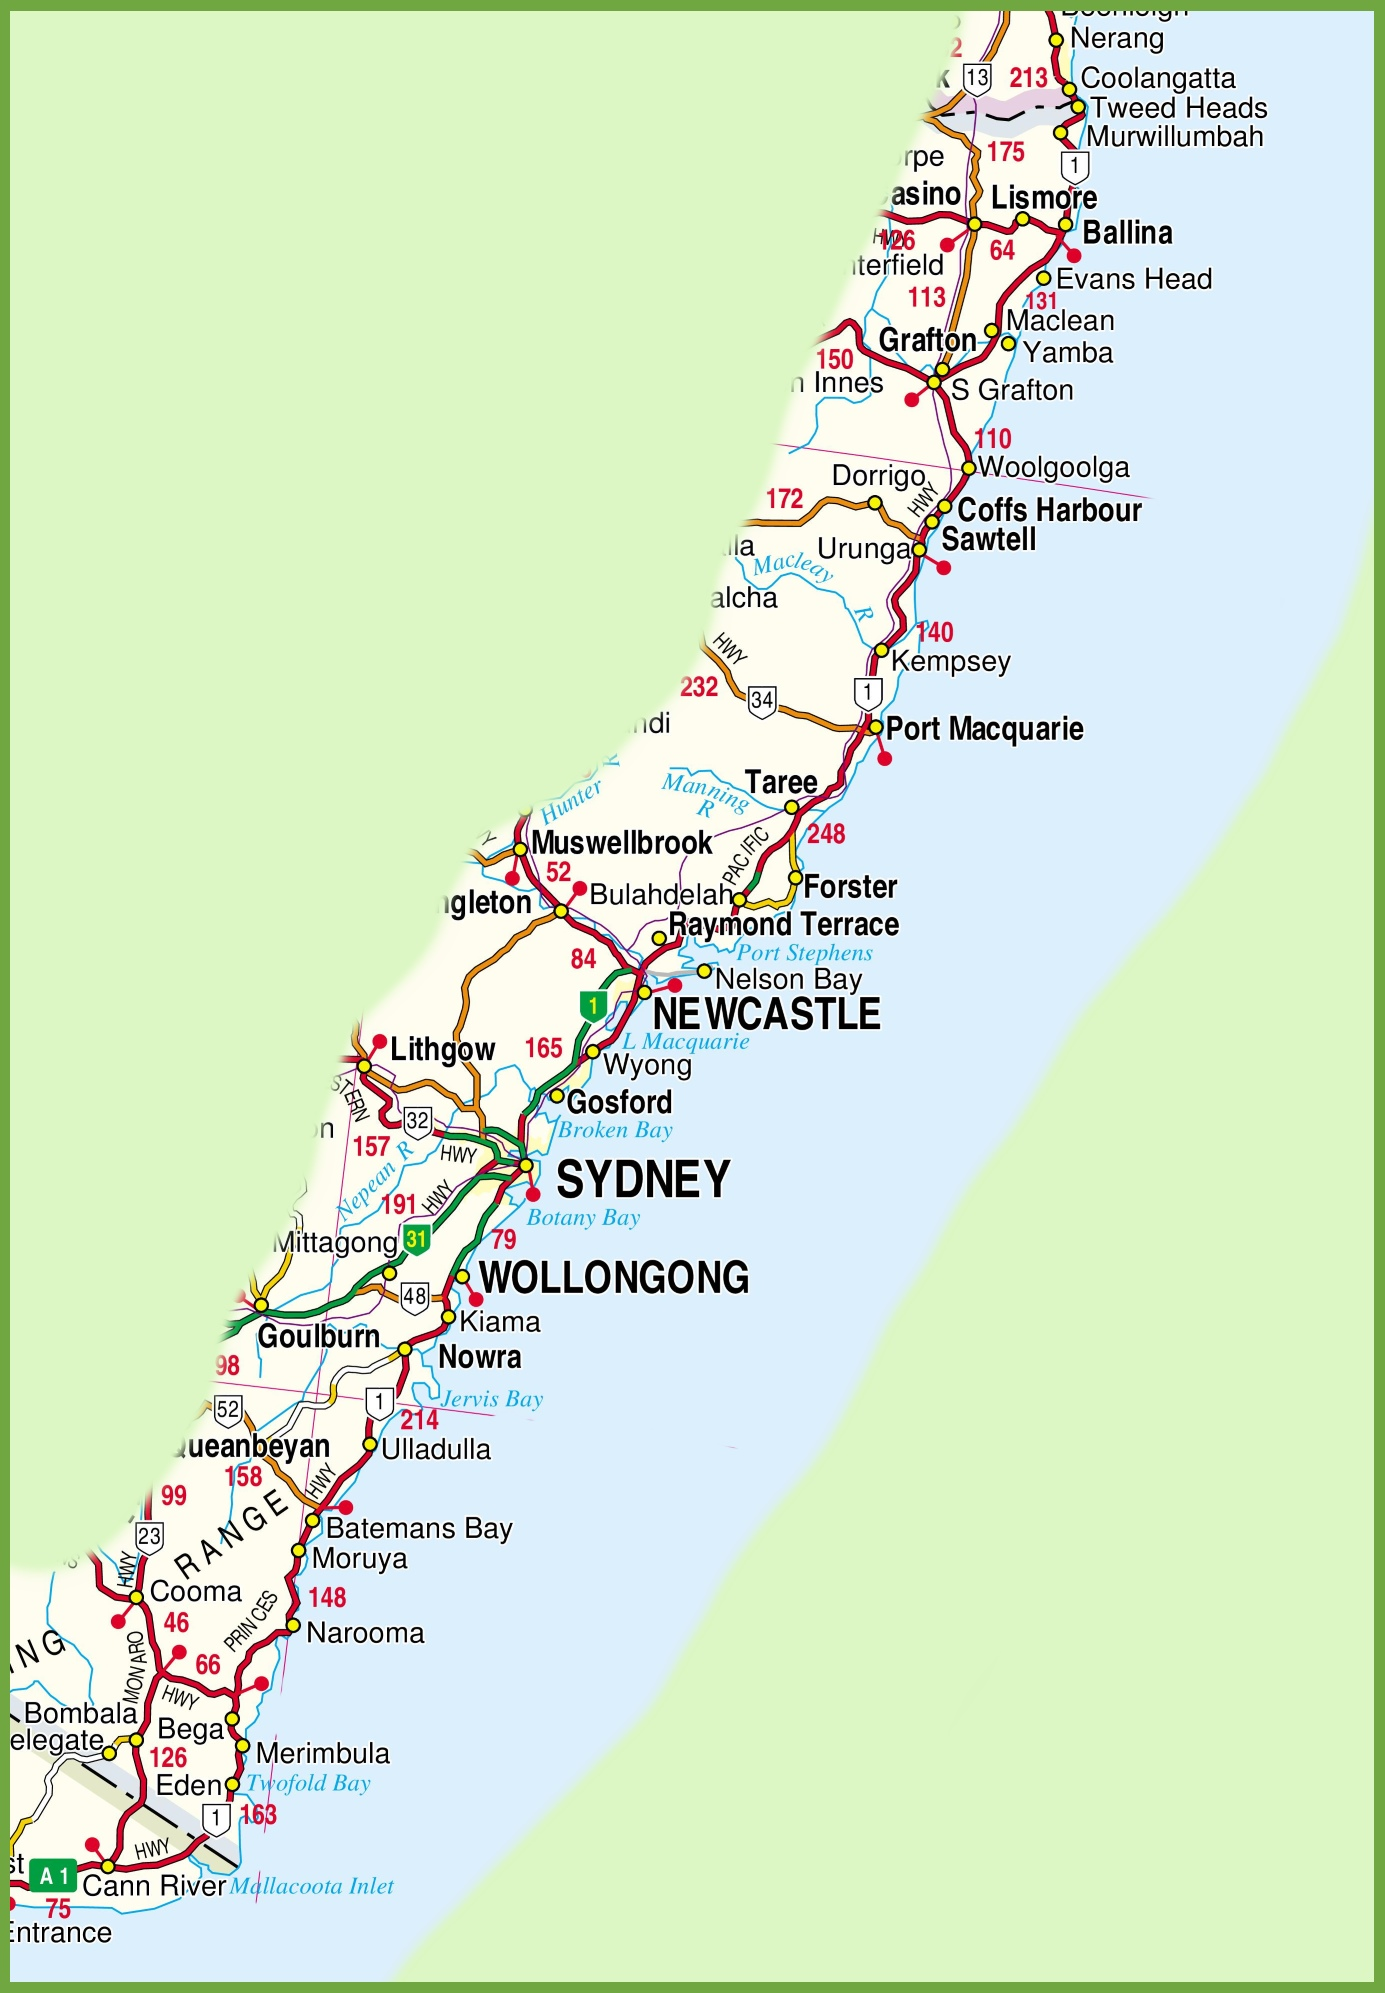 Map Of Nsw South Coast New South Wales coast map